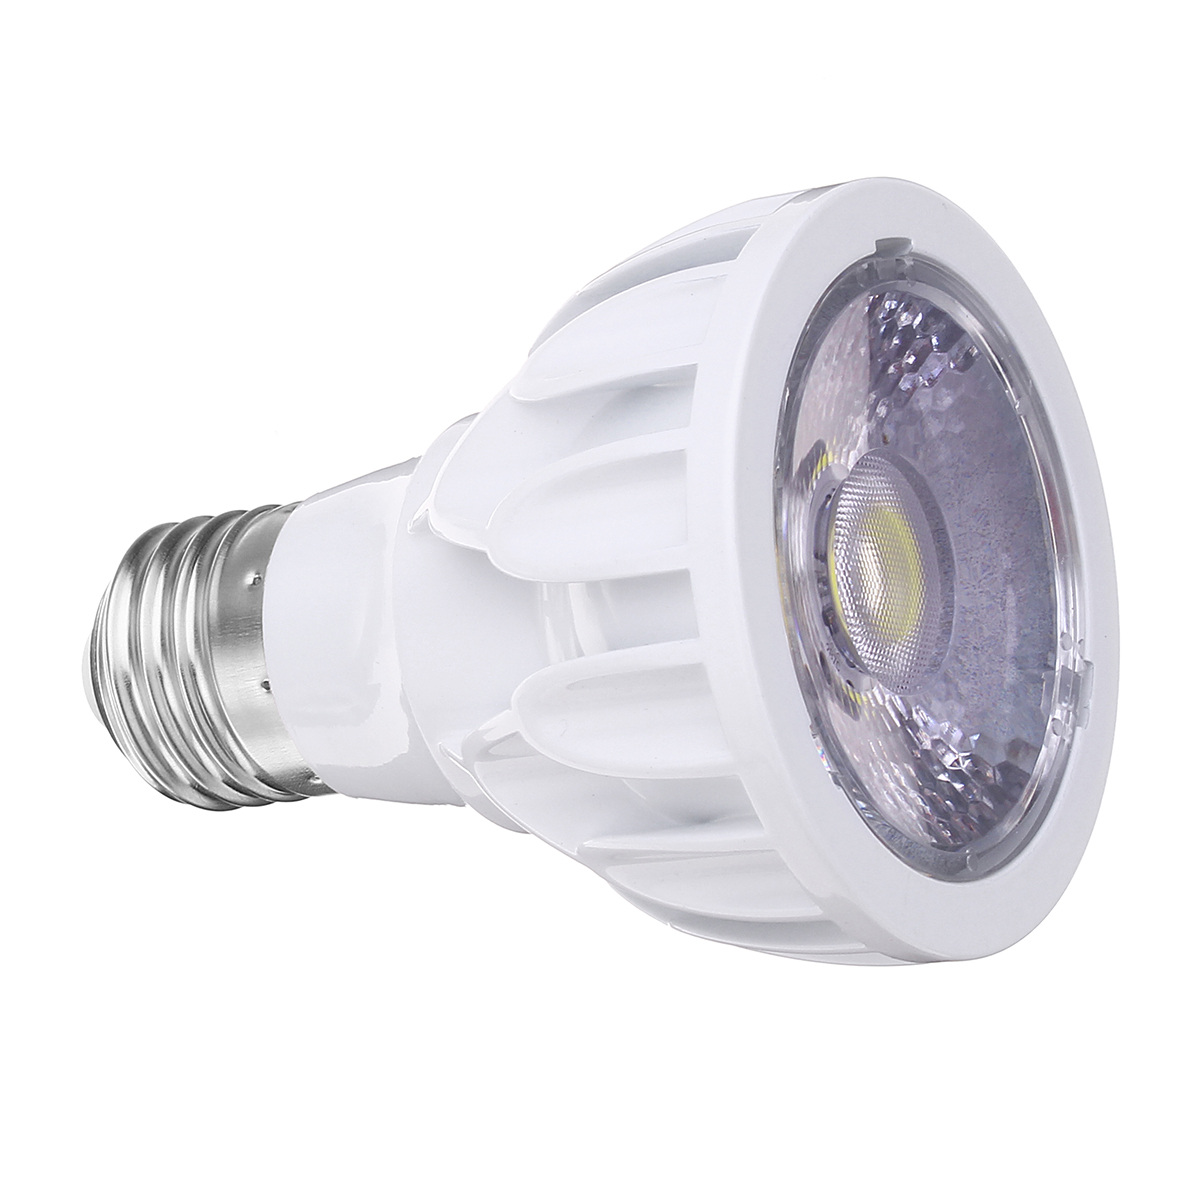 E27 7W Super Bright Dimmable Par 20 LED COB Spot Light Bulb Epistar Lamp AC220V